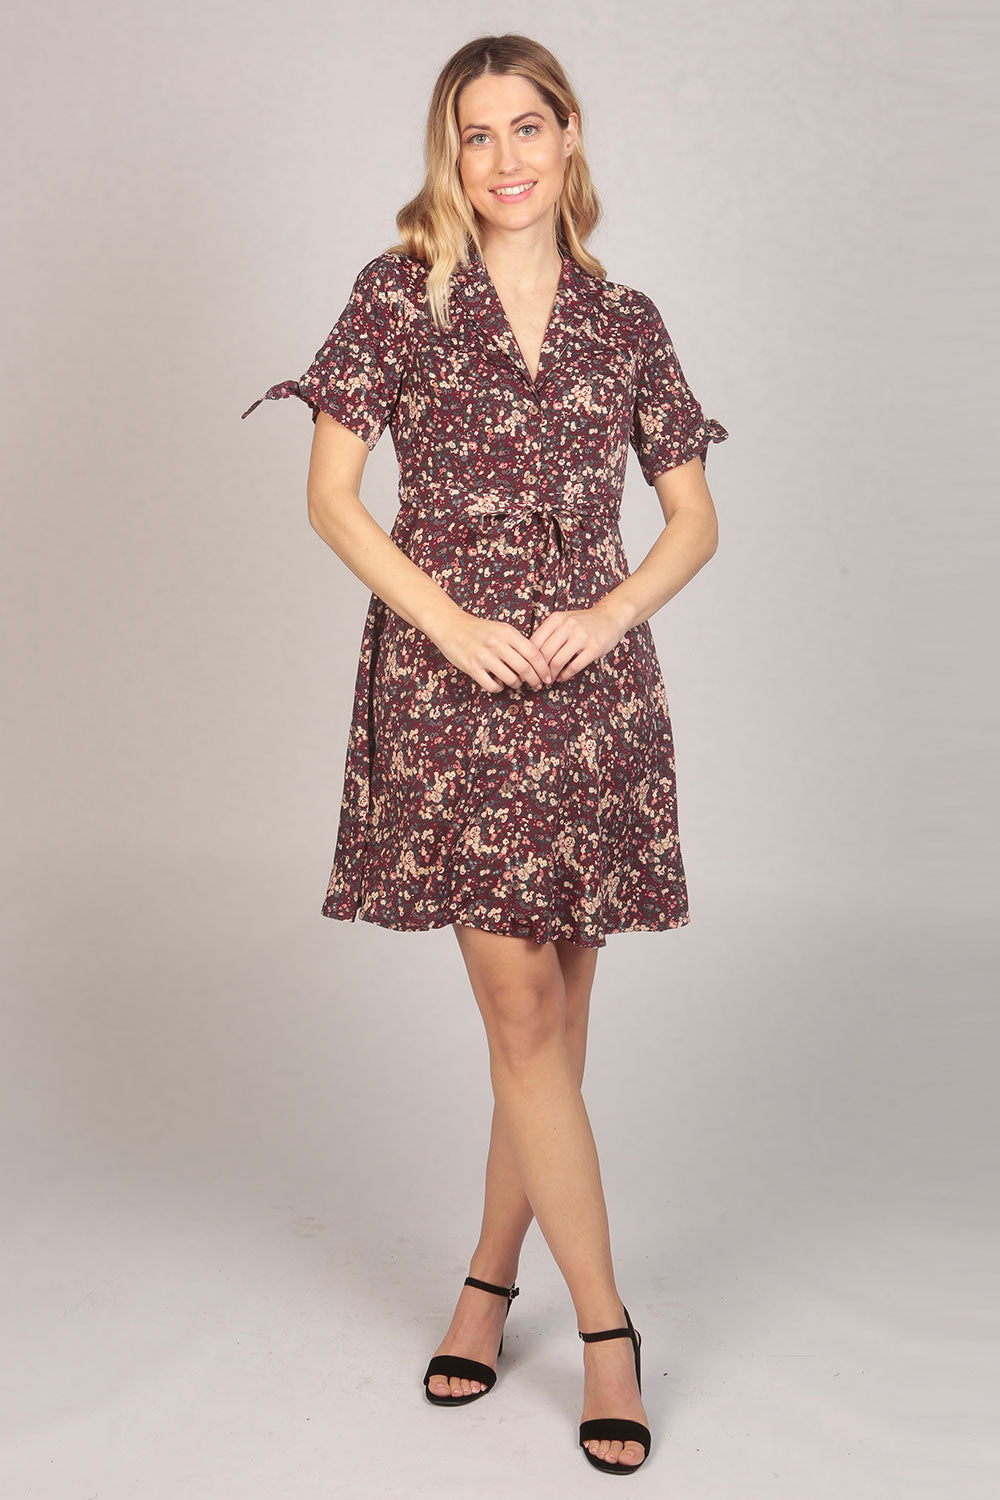 Short Sleeve Floral Print Shirt Dress in Maroon Red